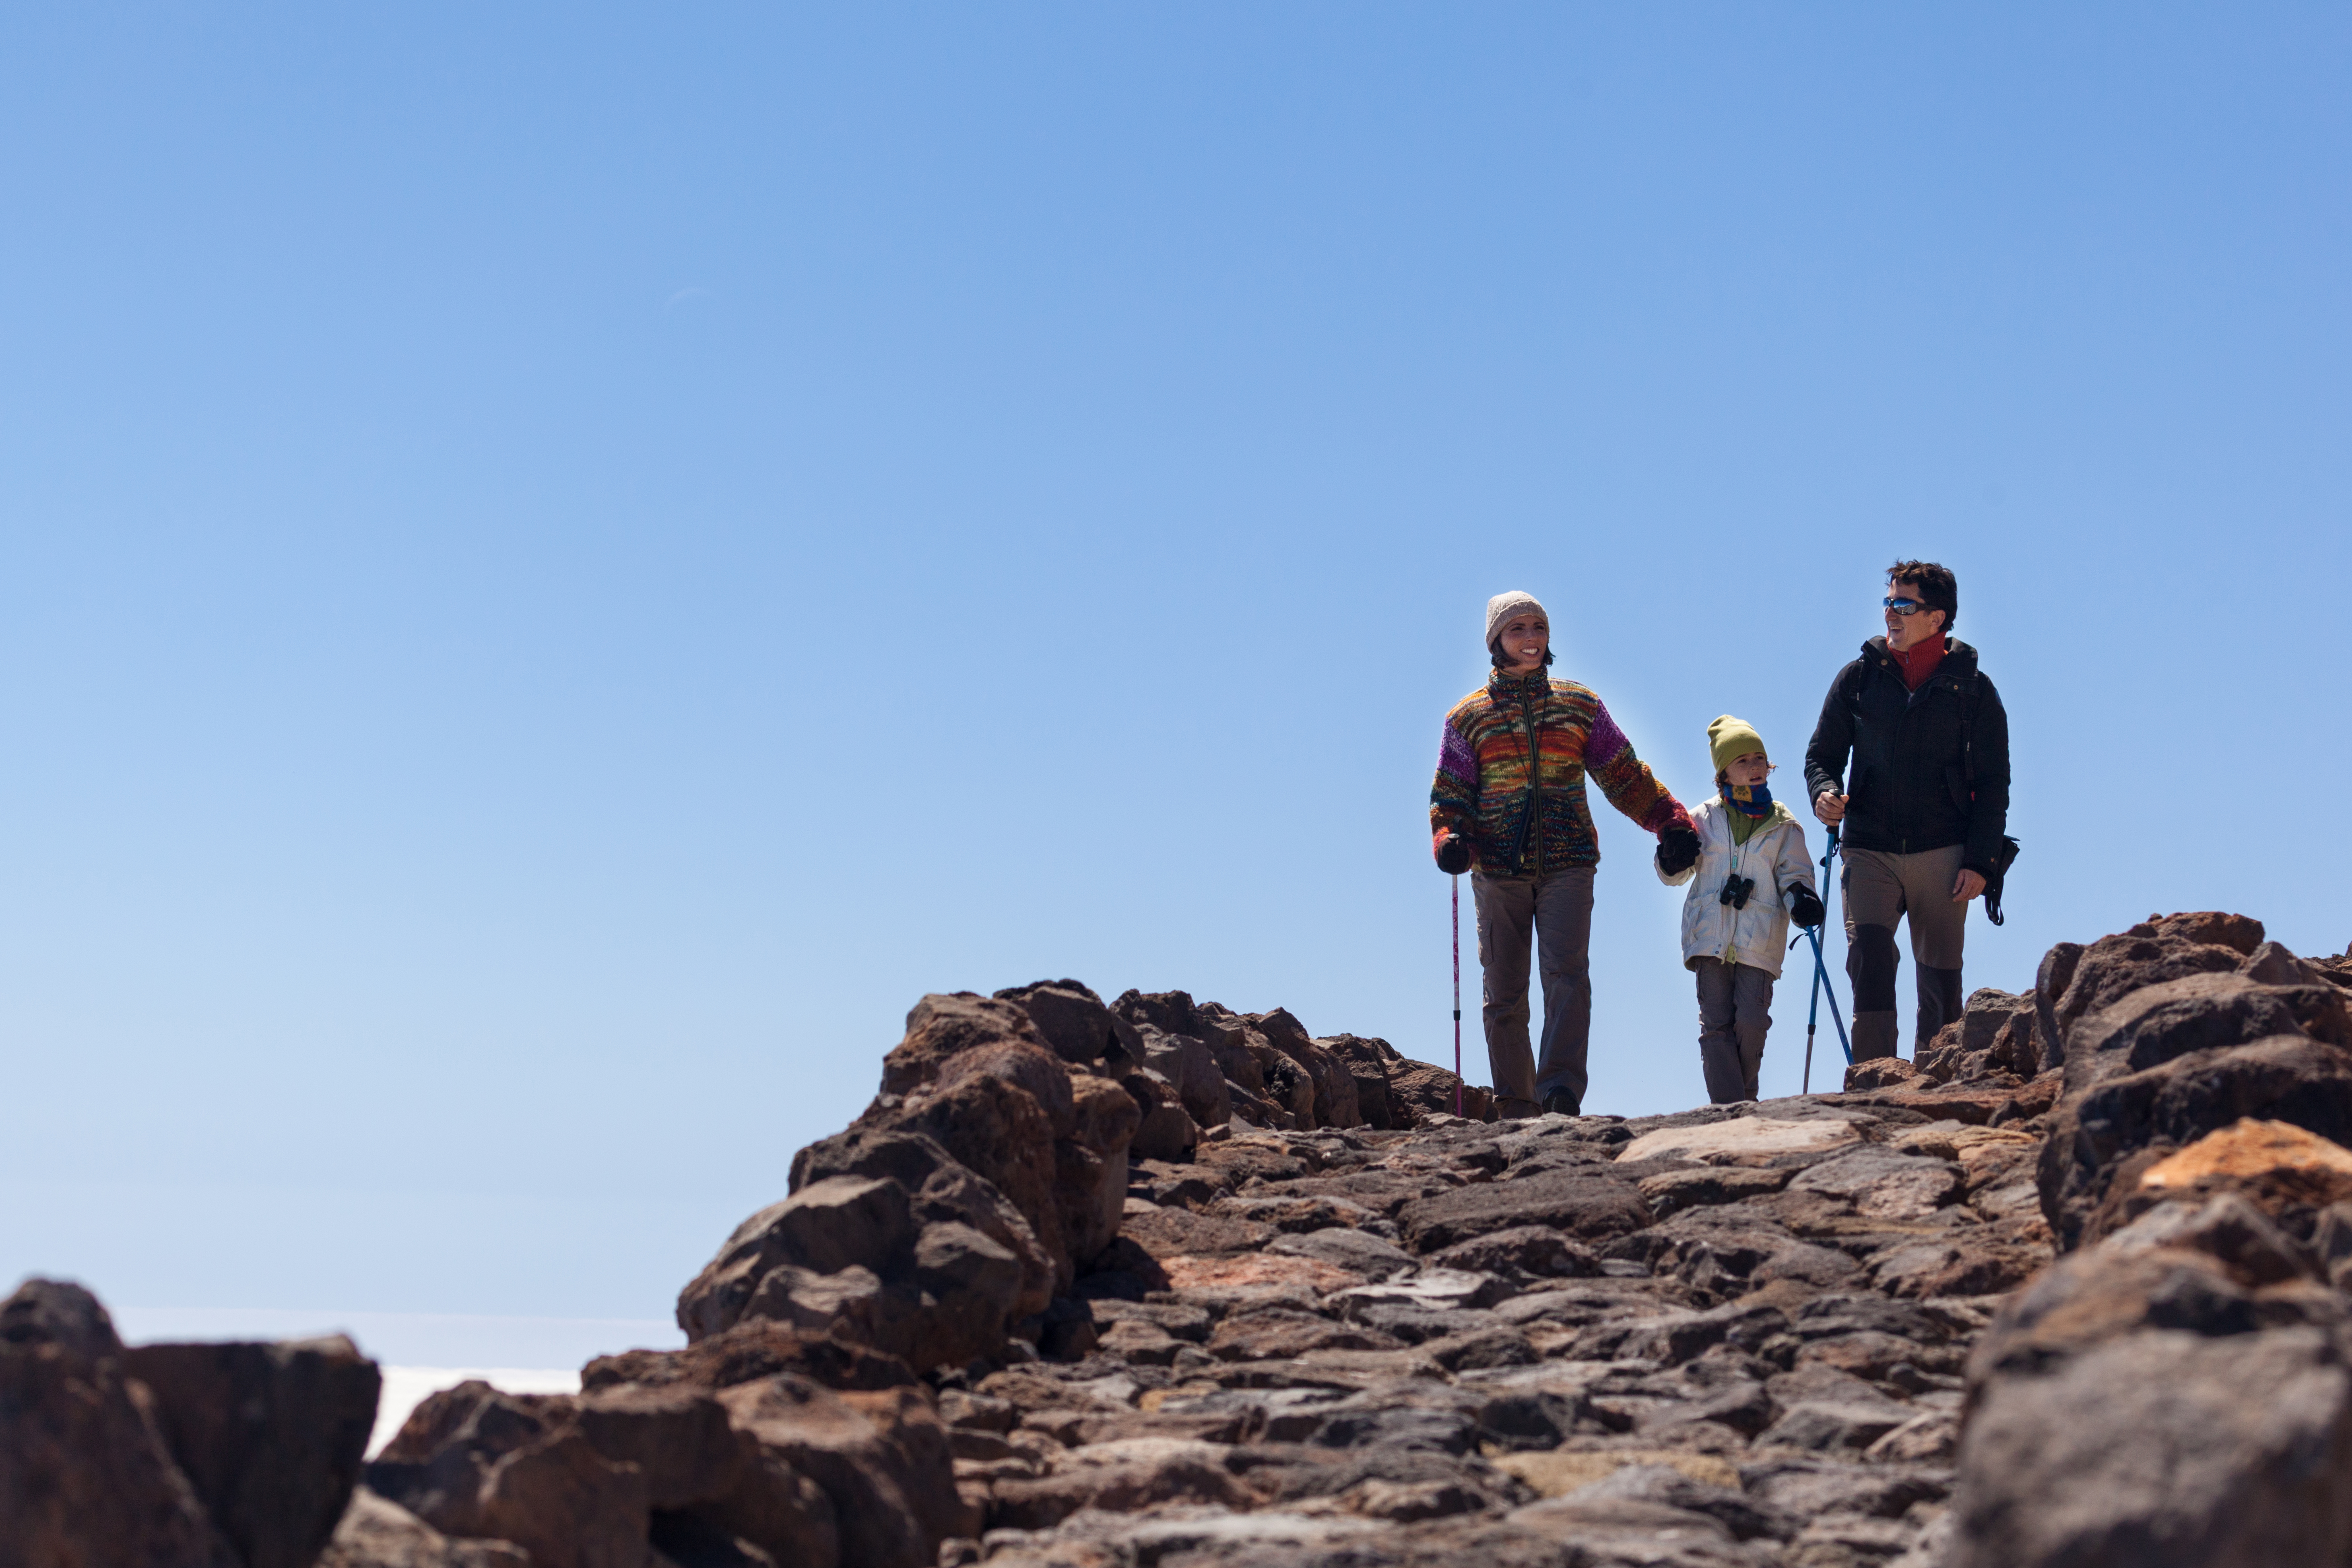 Visiting Teide with children and having a great family day out